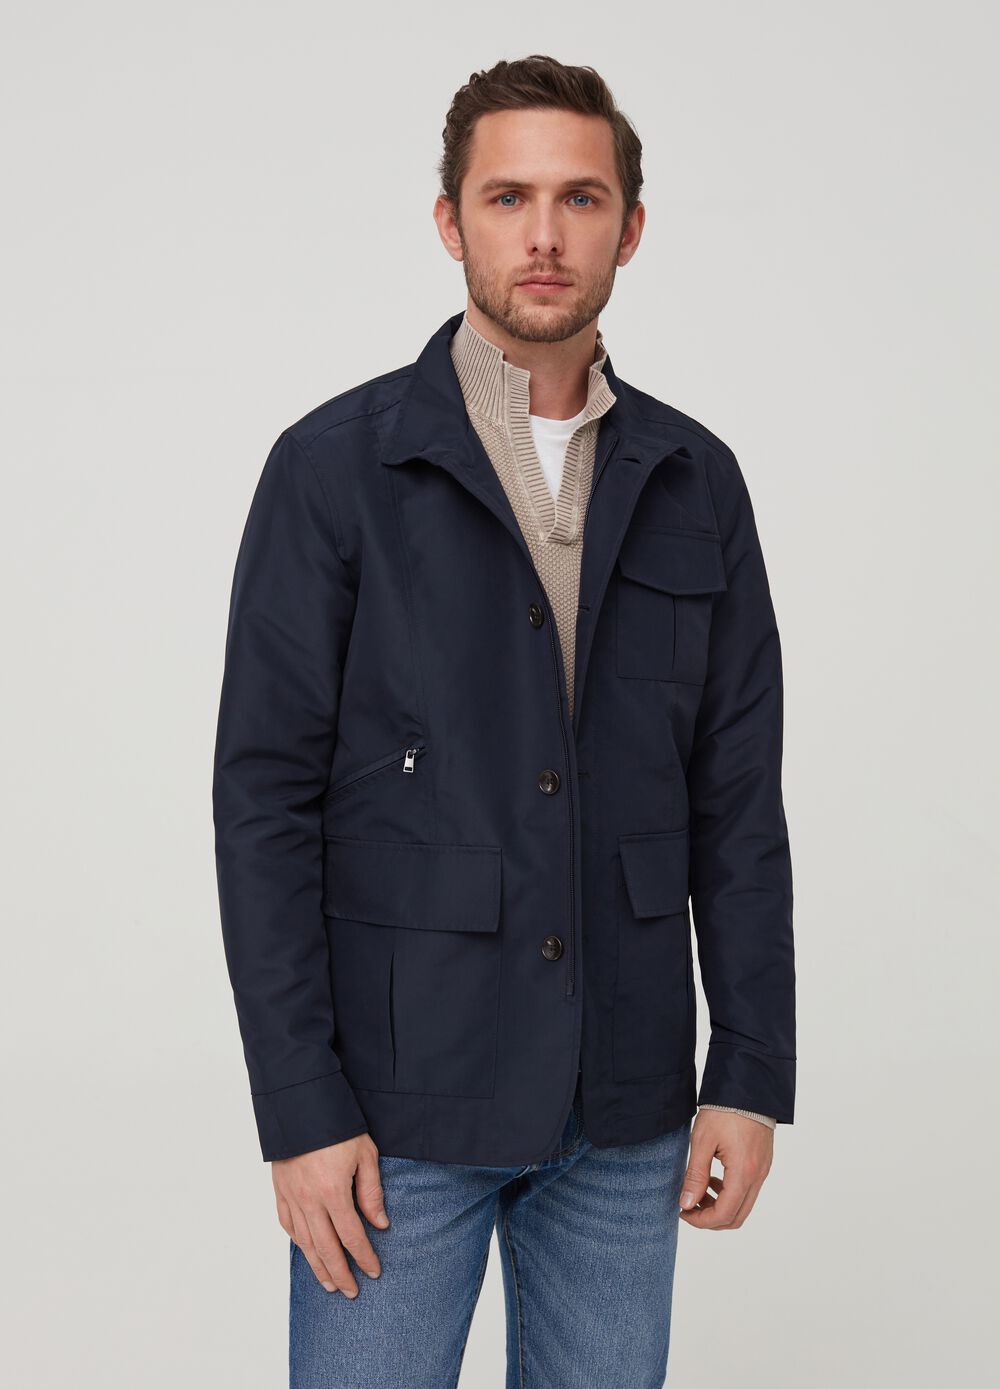 Solid colour jacket with pockets